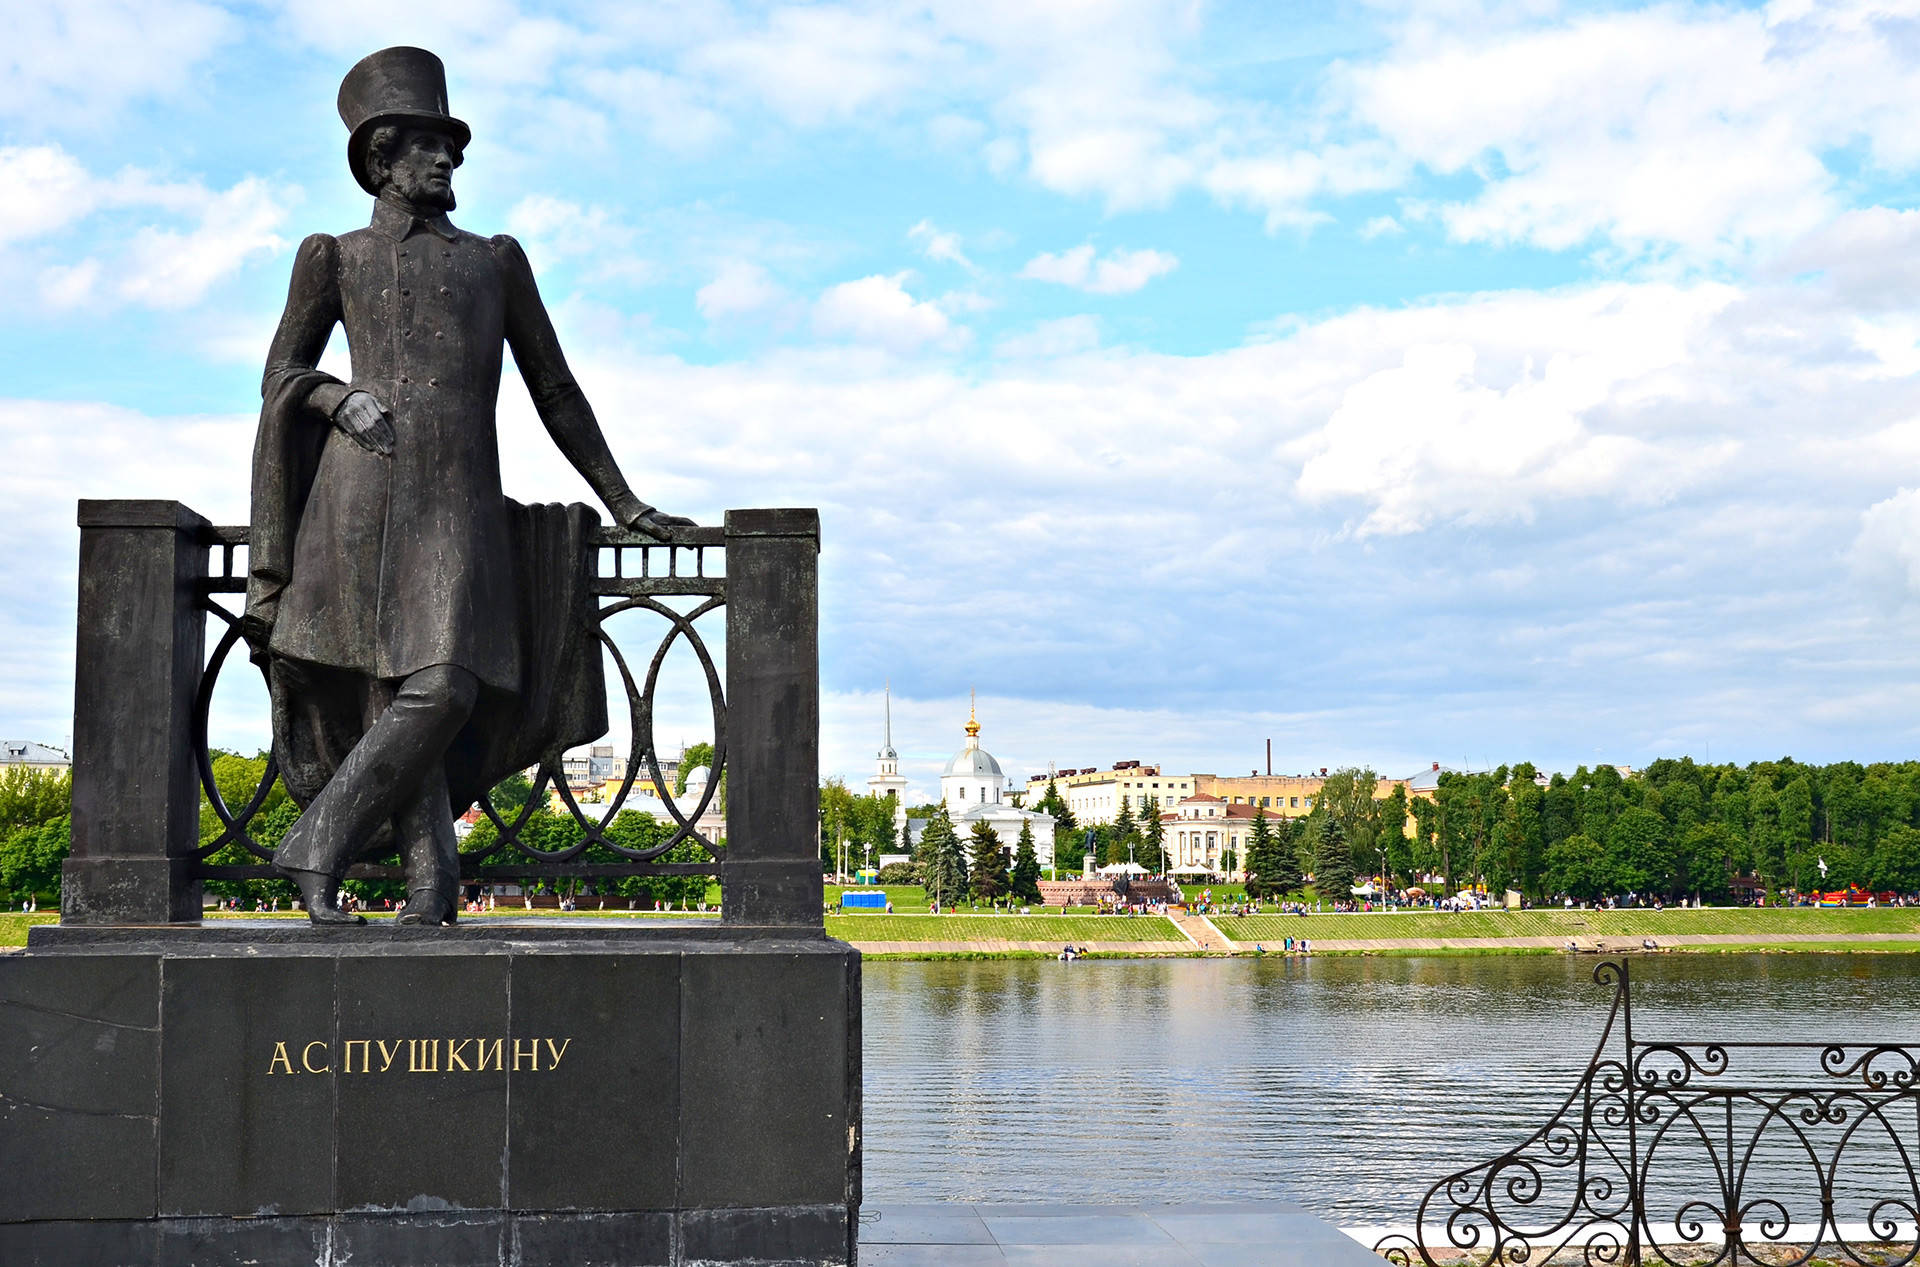 Alexander Pushkin greets you from the river Volga.